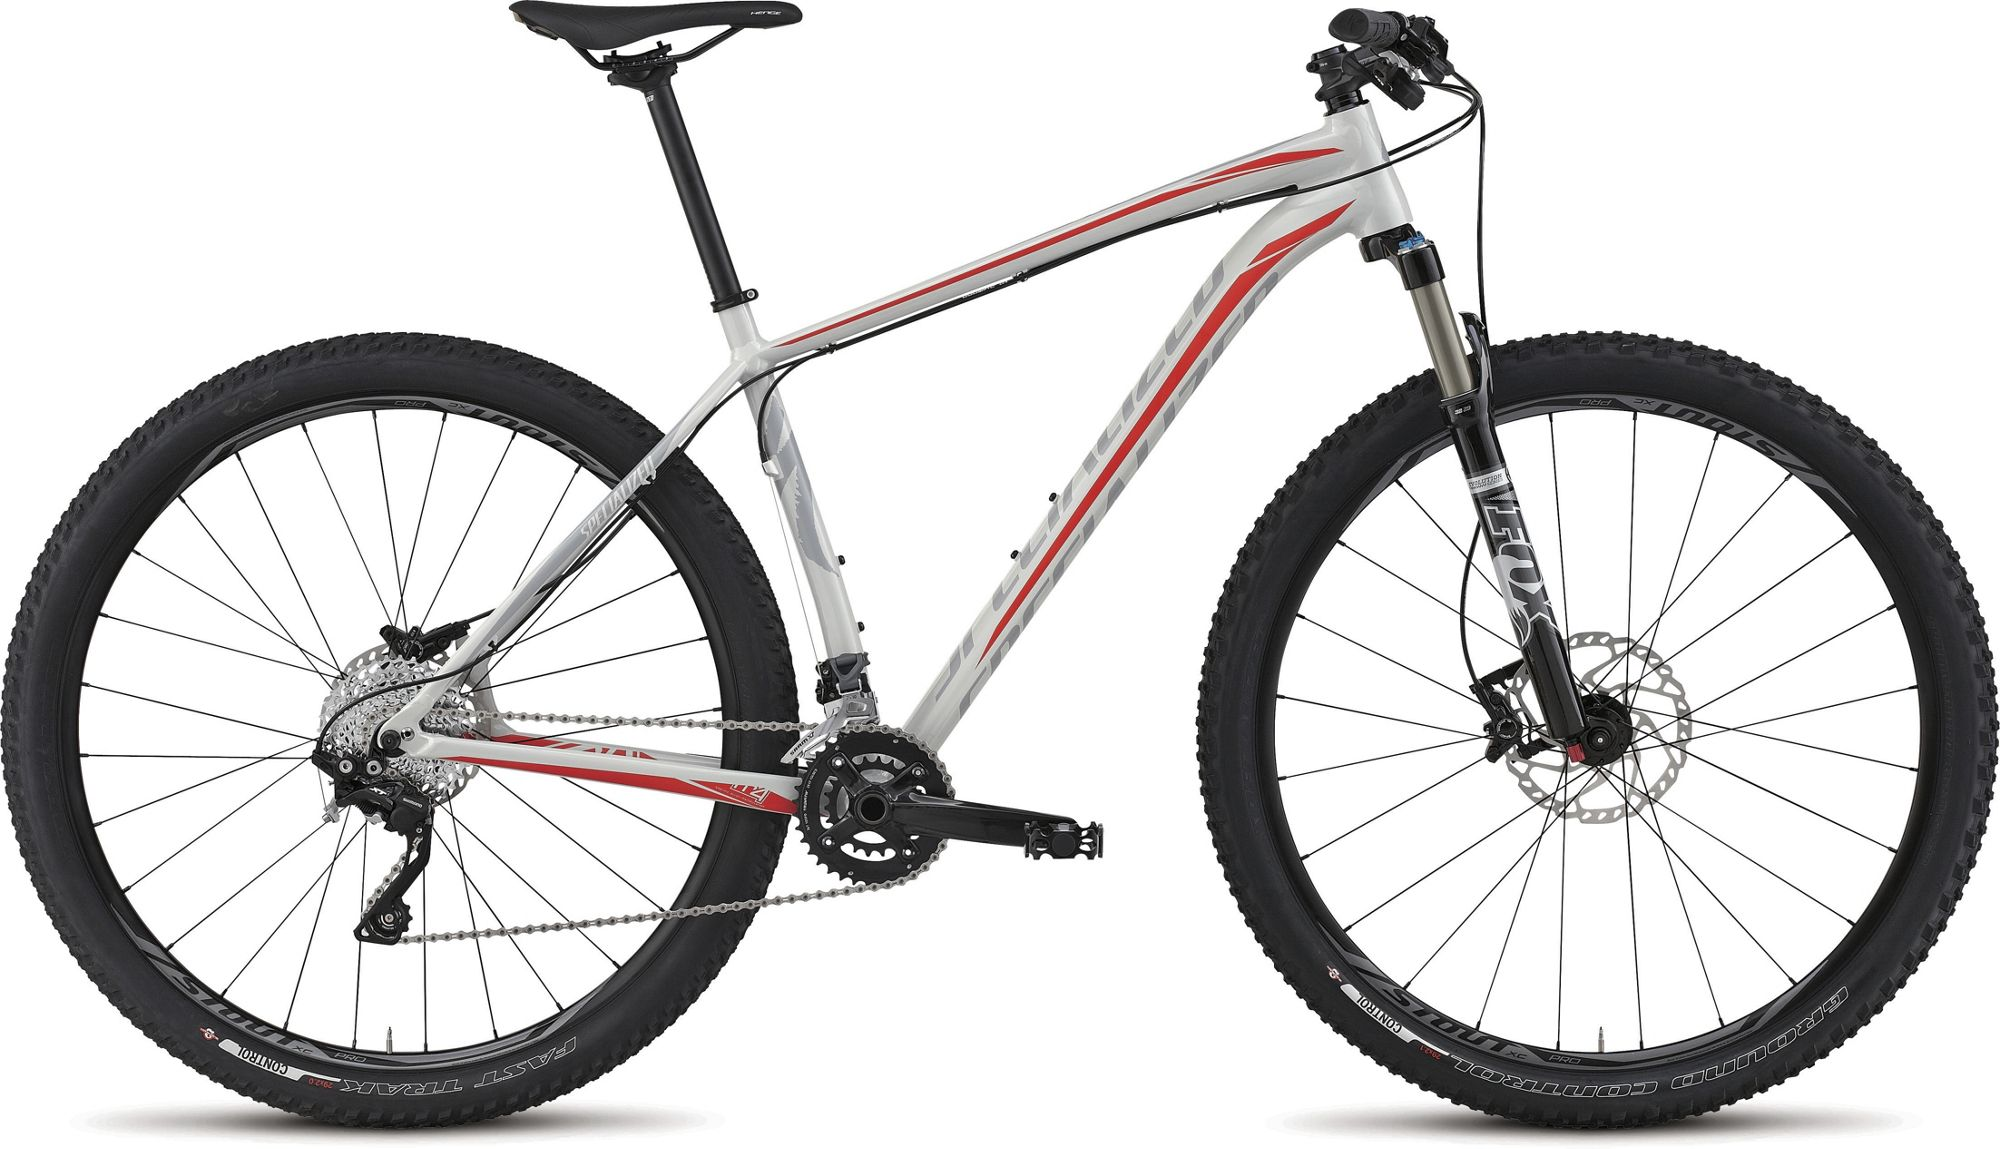 e46fda42c55 Specialized Crave Pro 2015 review - The Bike List